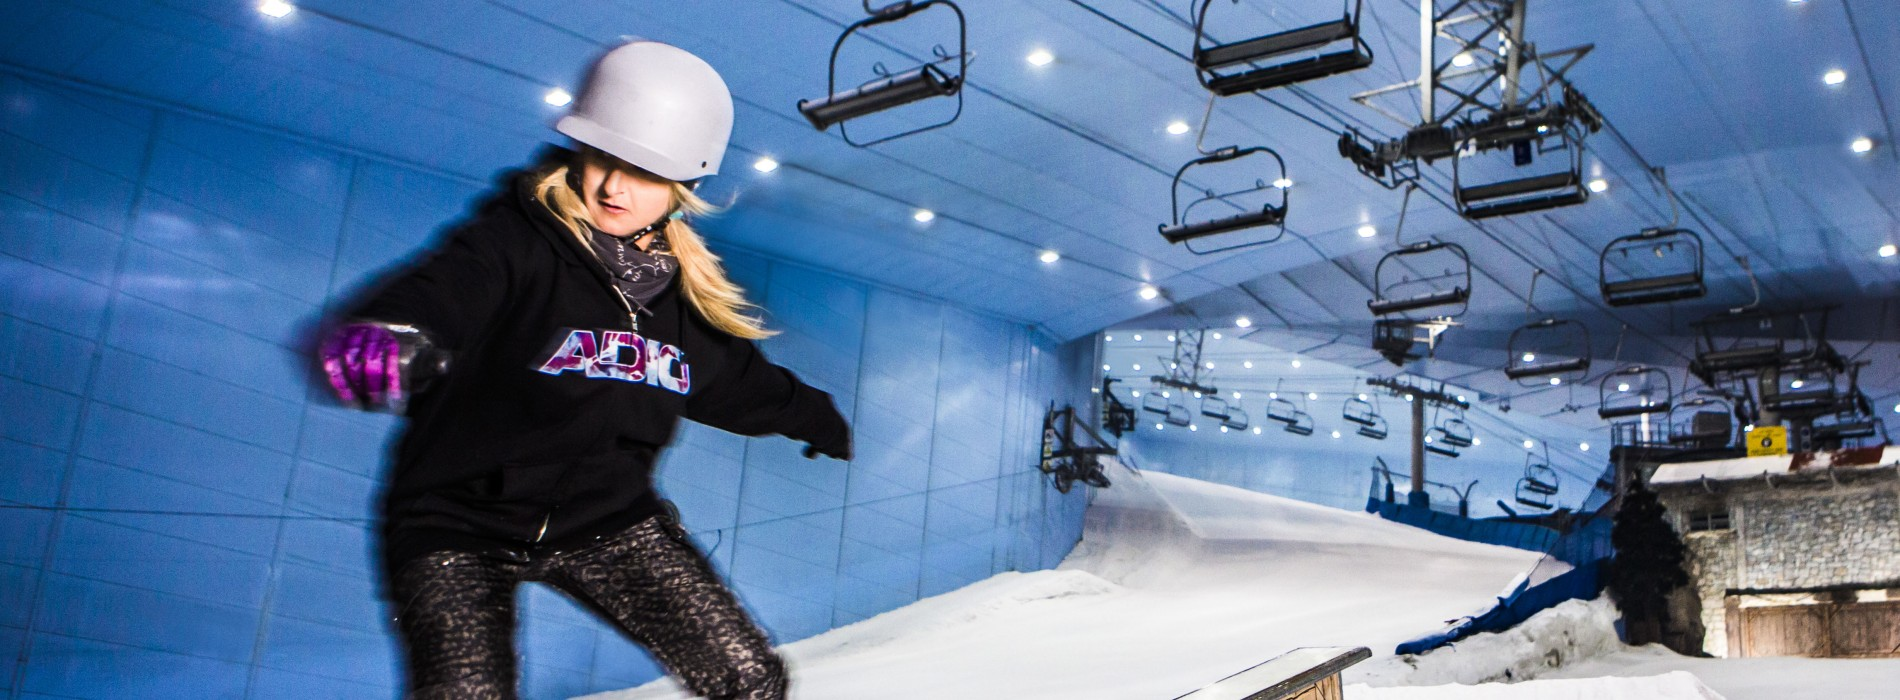 Down through the Snow at Ski Dubai